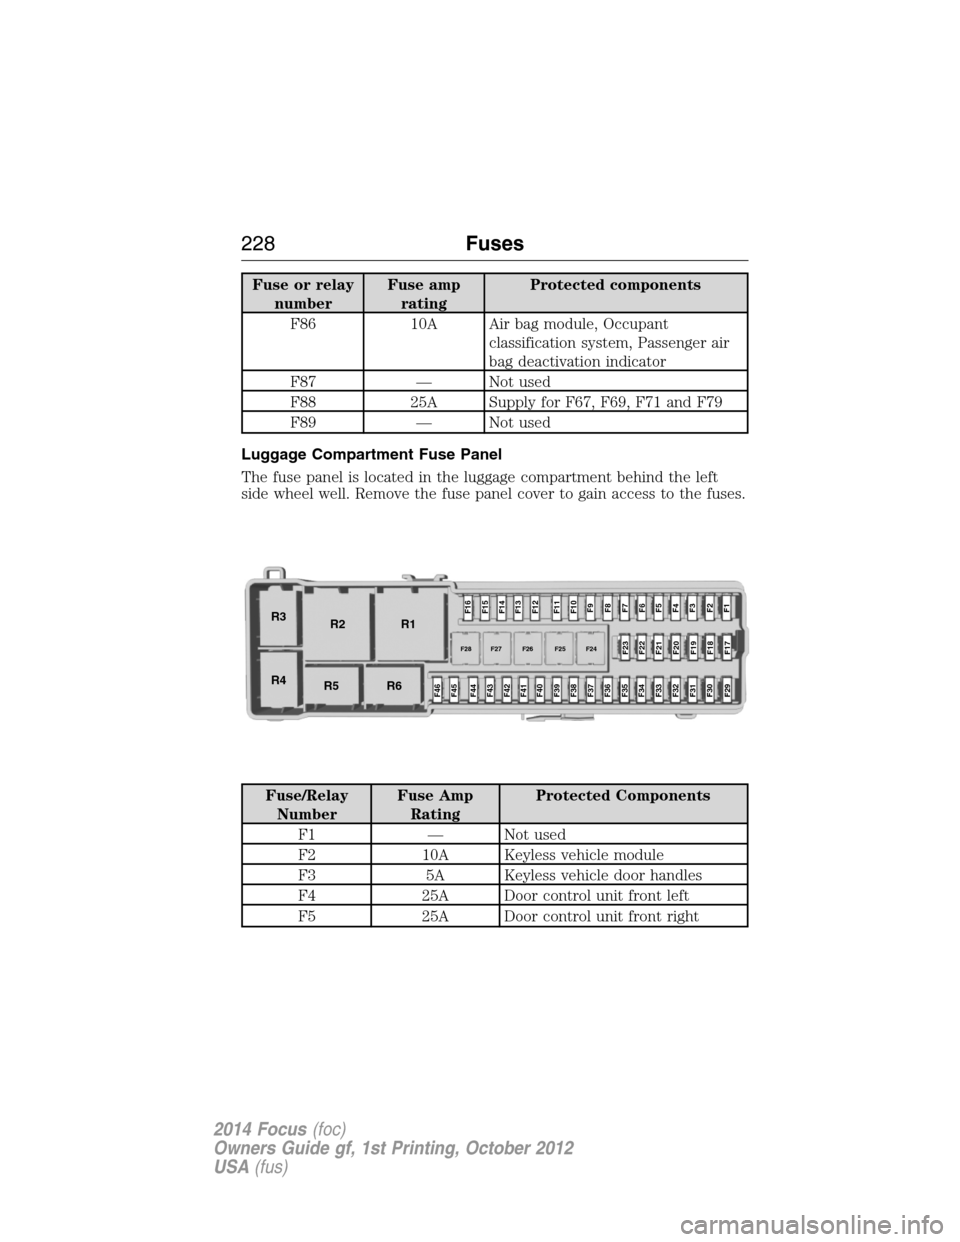 Fuses Ford Focus 2014 3g Owners Manual 2012 Compartment Fuse Box Interior Page 229 Or Relay